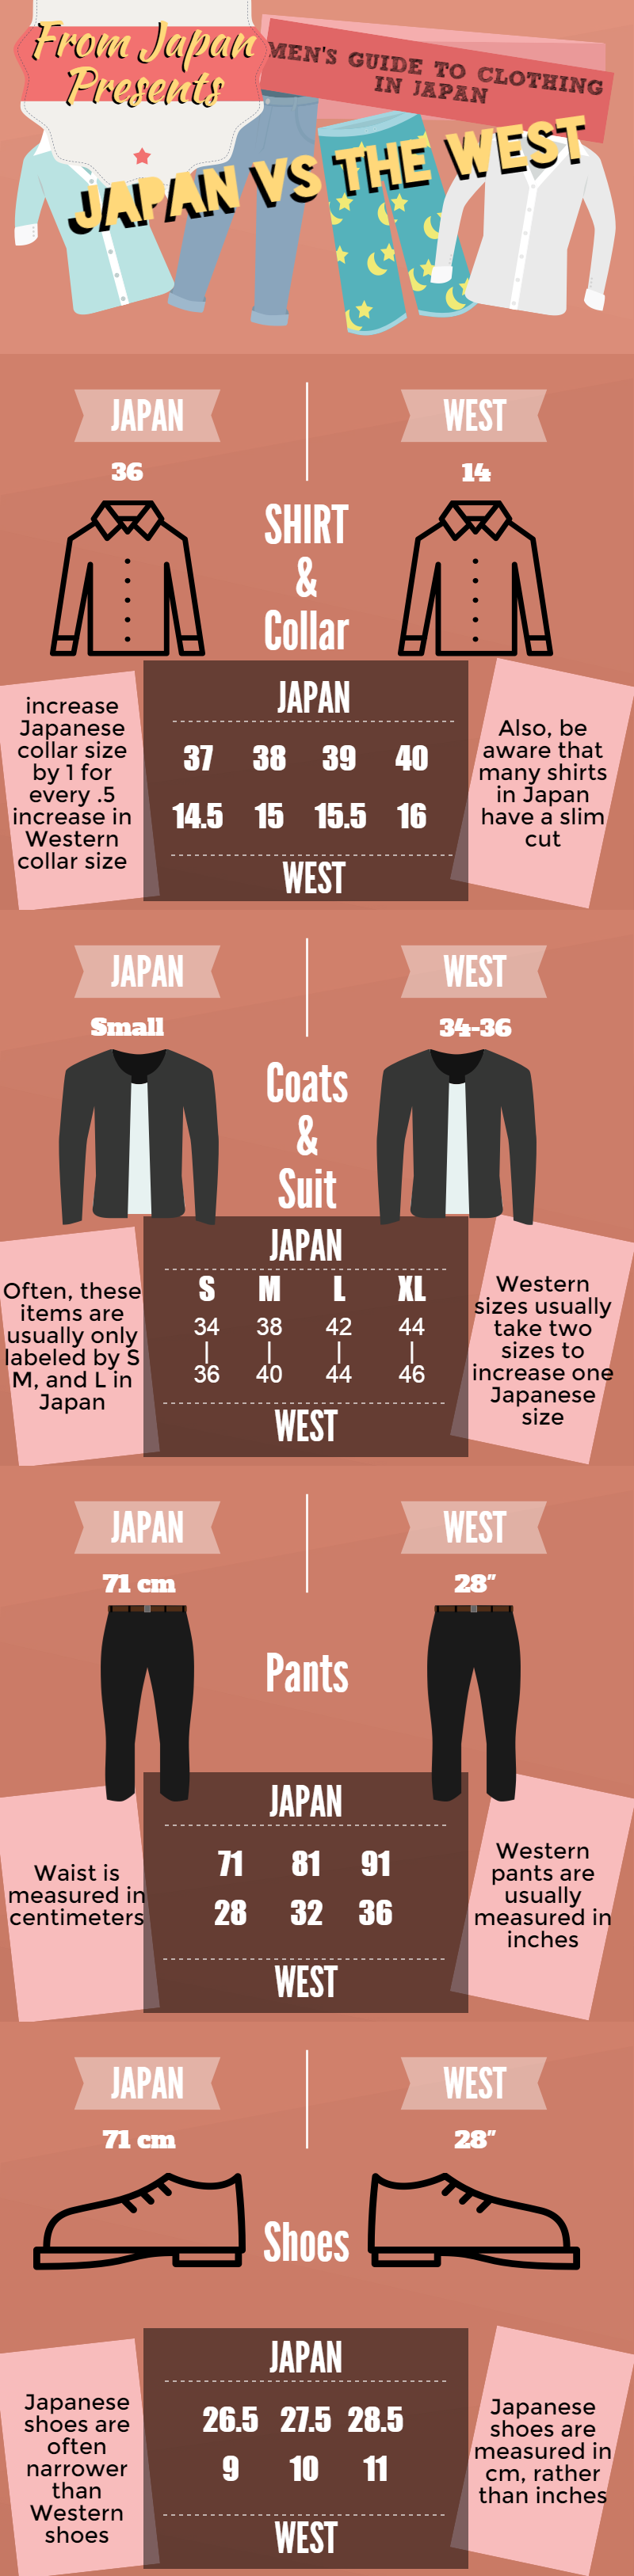 Japanese Clothing and Shoe Sizing Guide: Important for Online